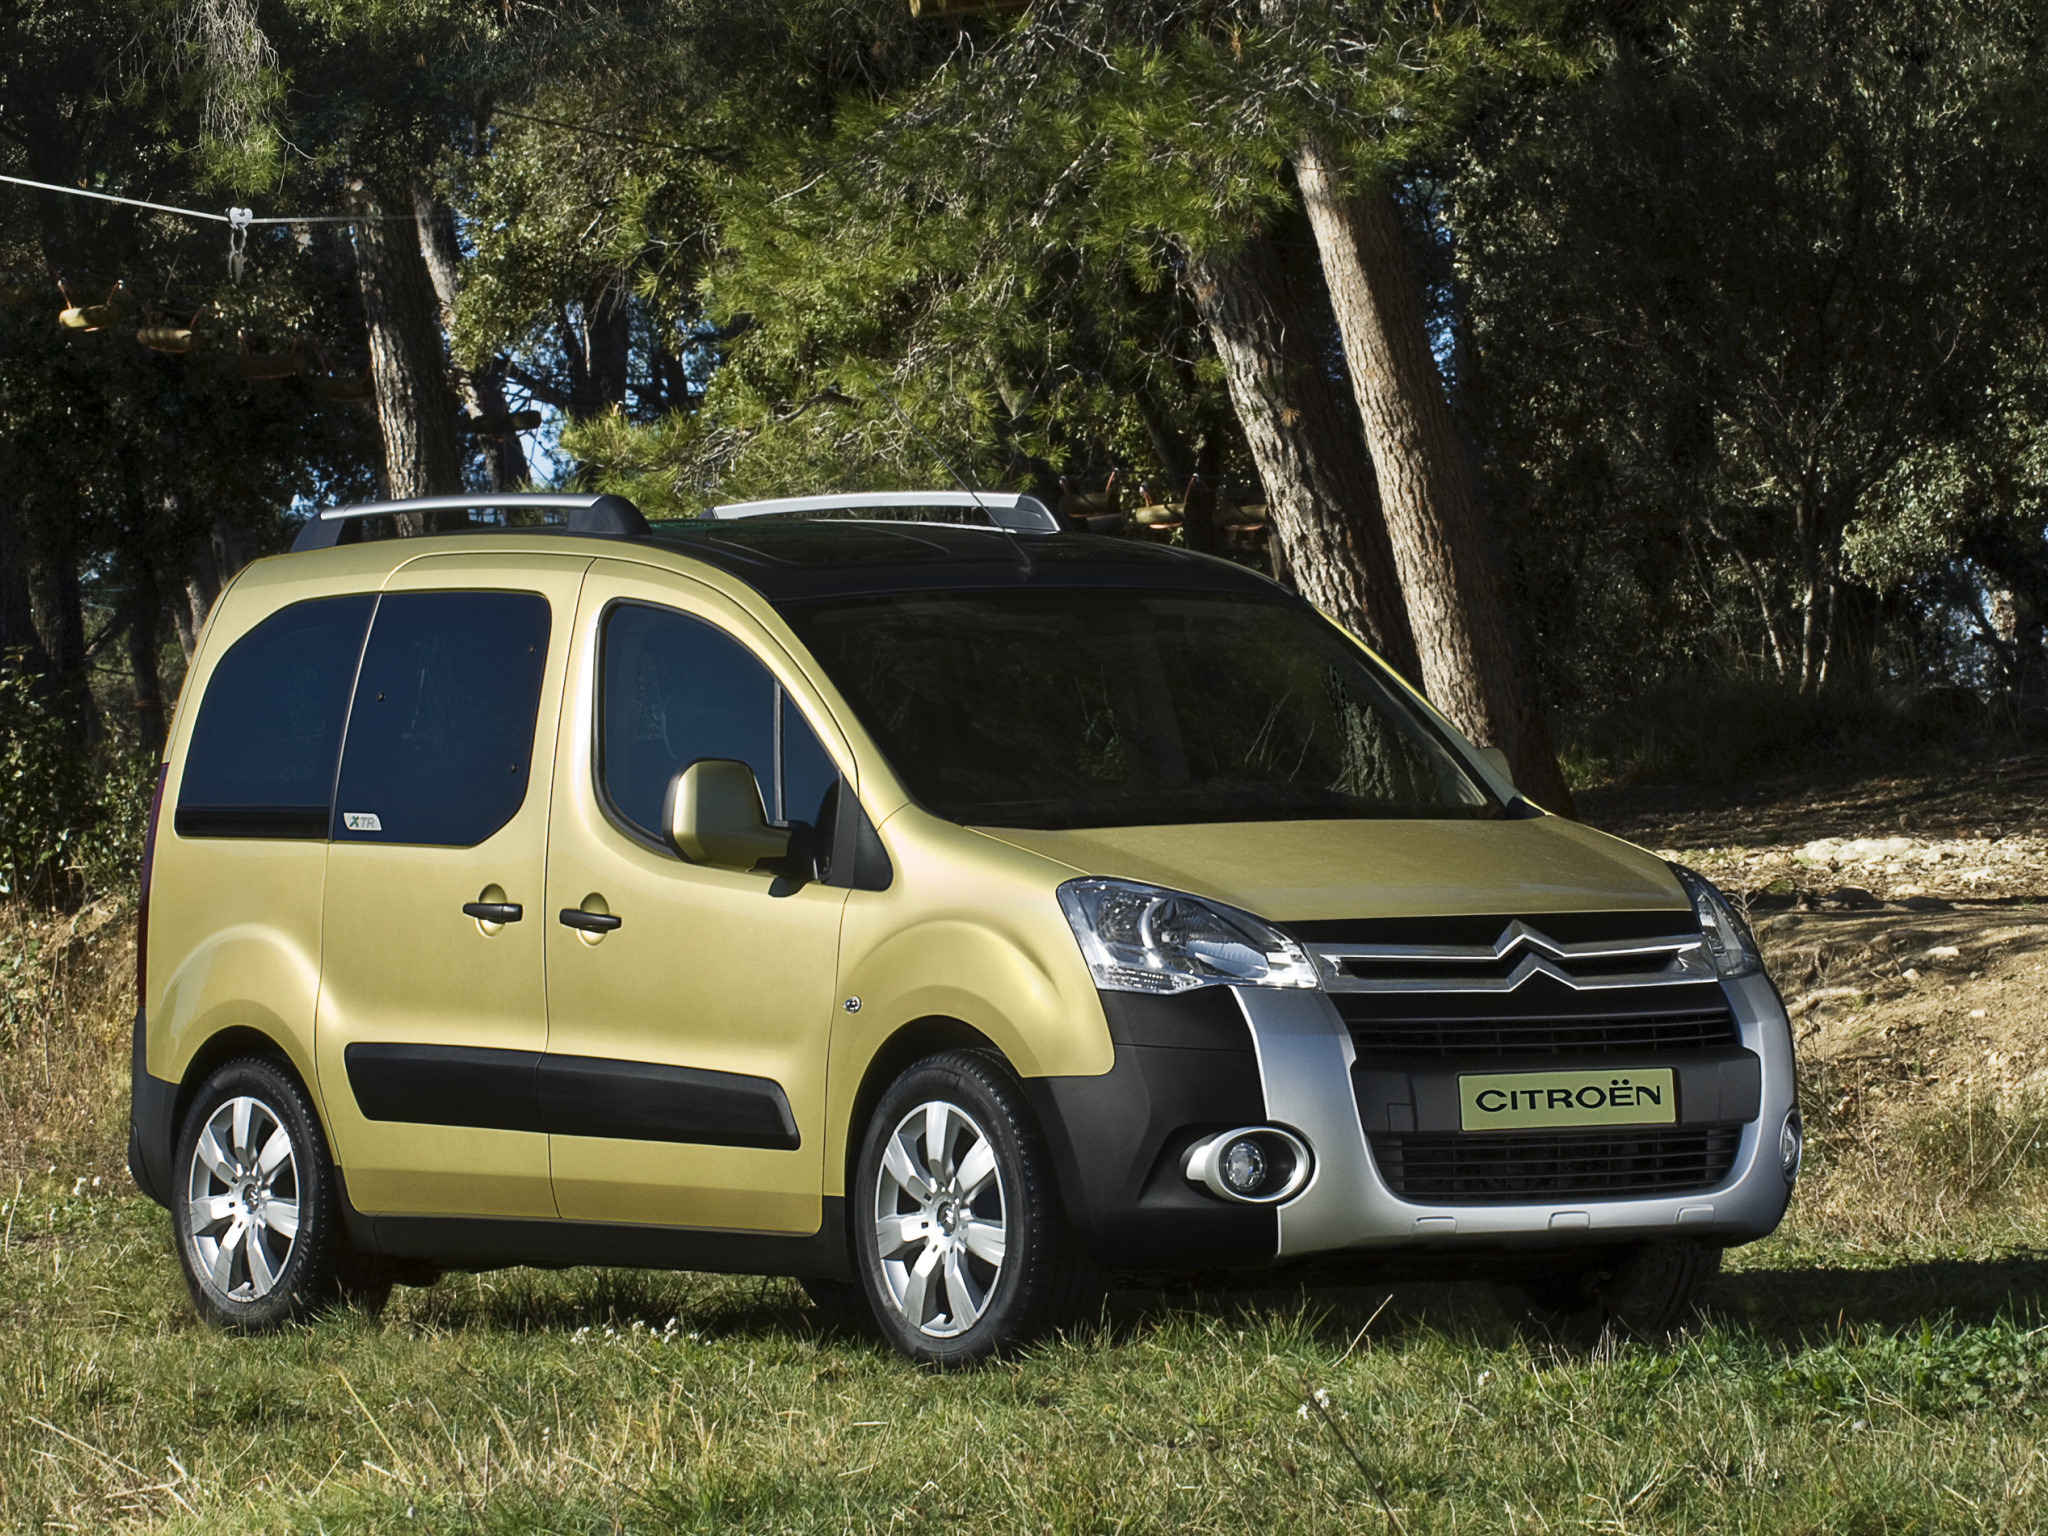 citroen berlingo xtr 2008 citroen berlingo xtr 2008 photo 01 car in pictures car photo gallery. Black Bedroom Furniture Sets. Home Design Ideas